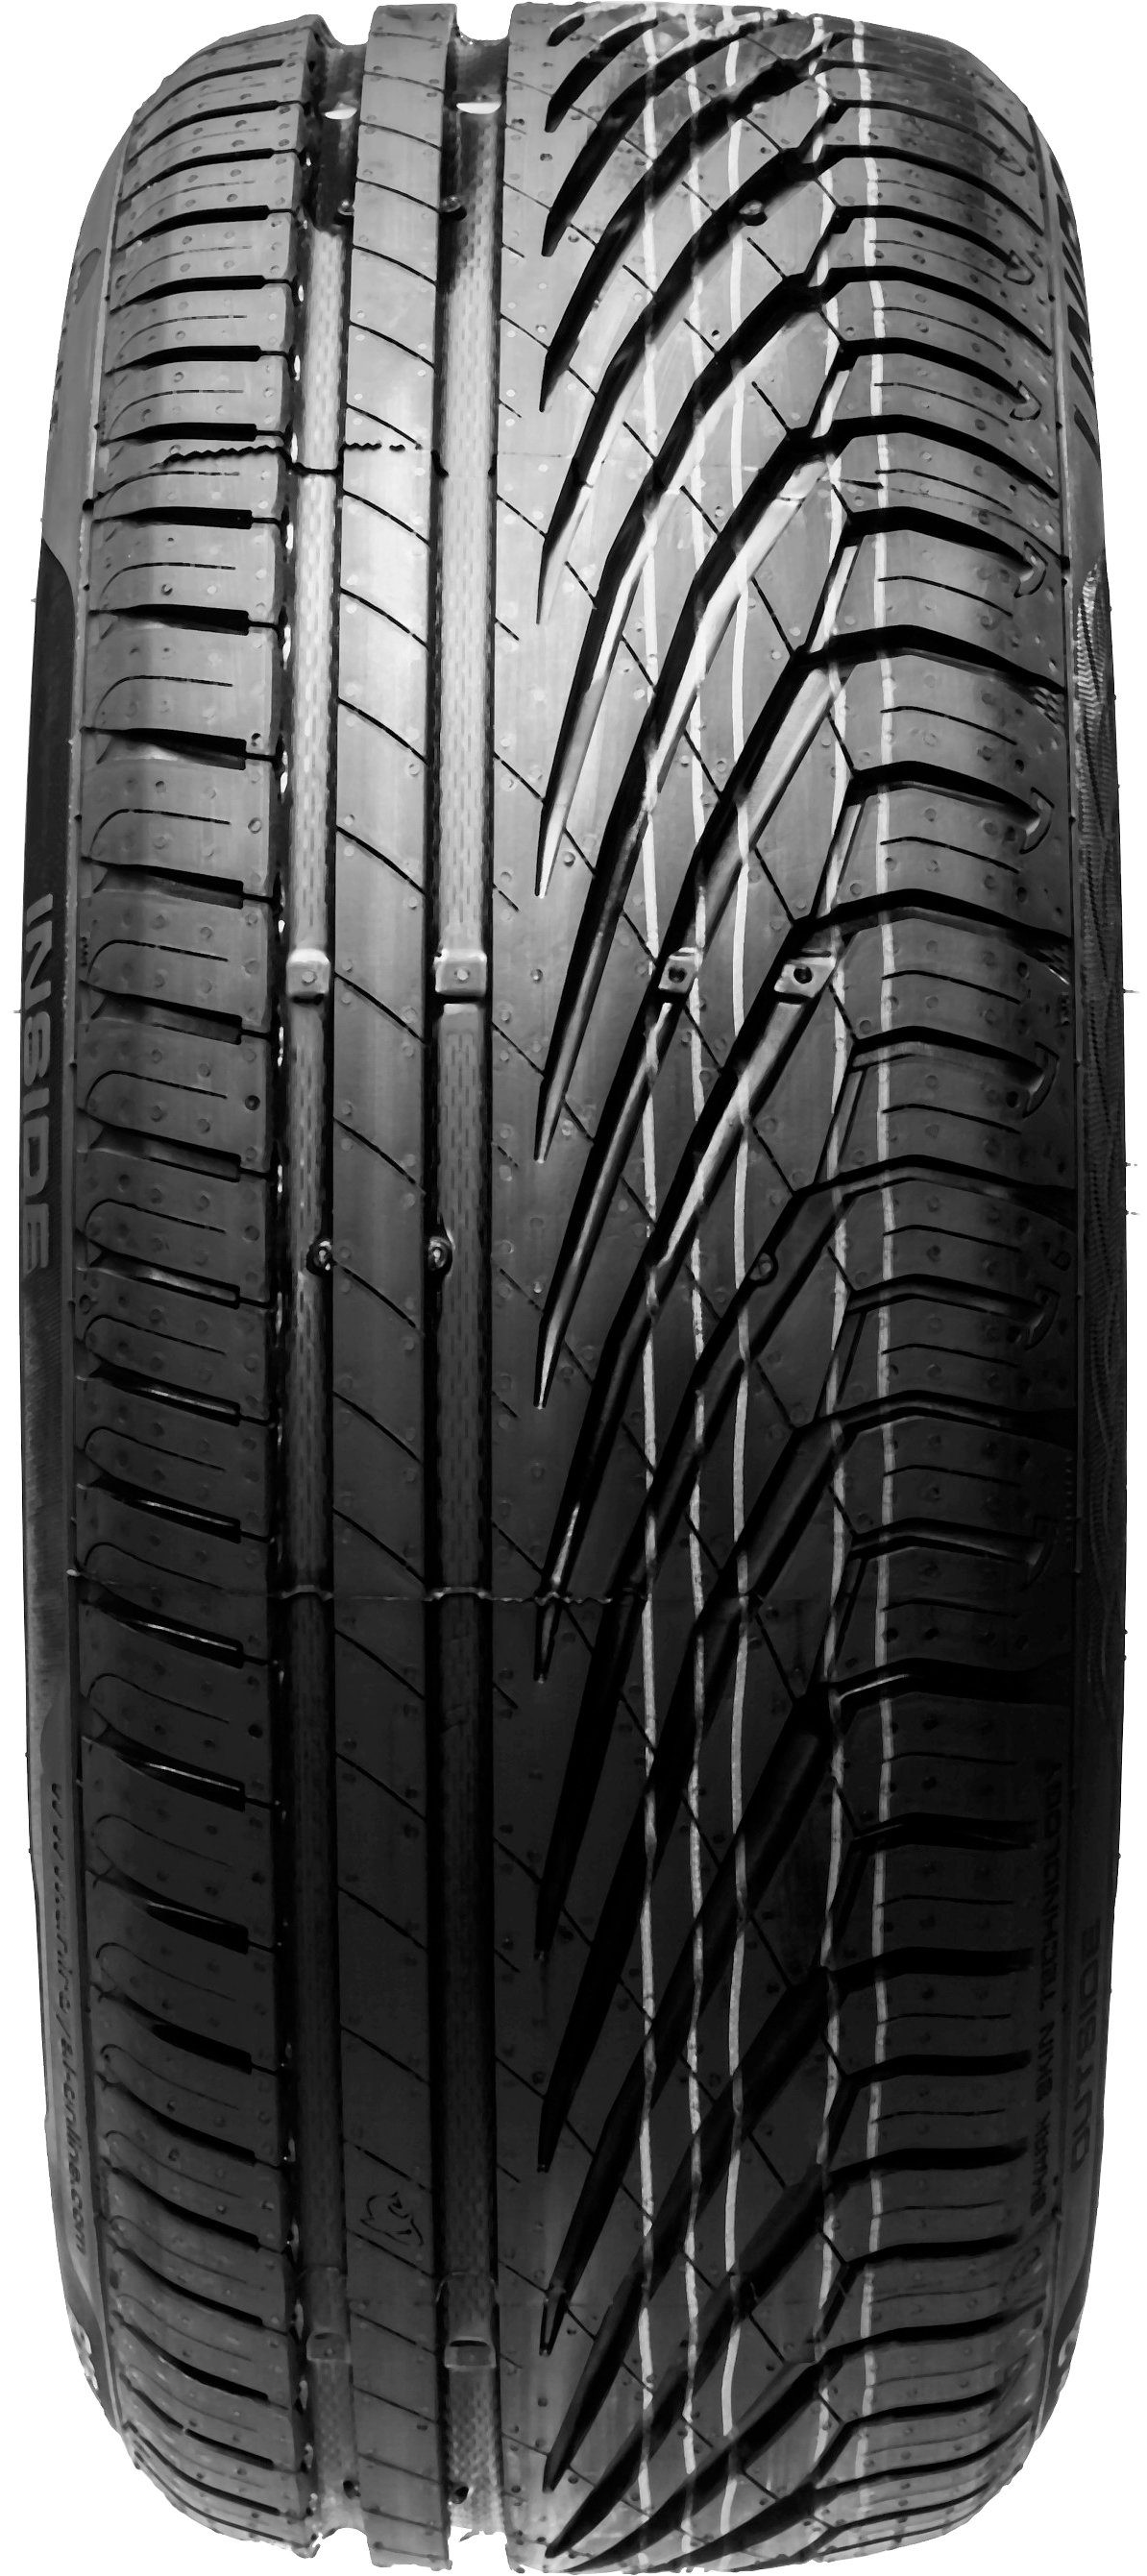 UNIROYAL Sommerreifen »RainSport 3«, 225/45 R18 95Y XL